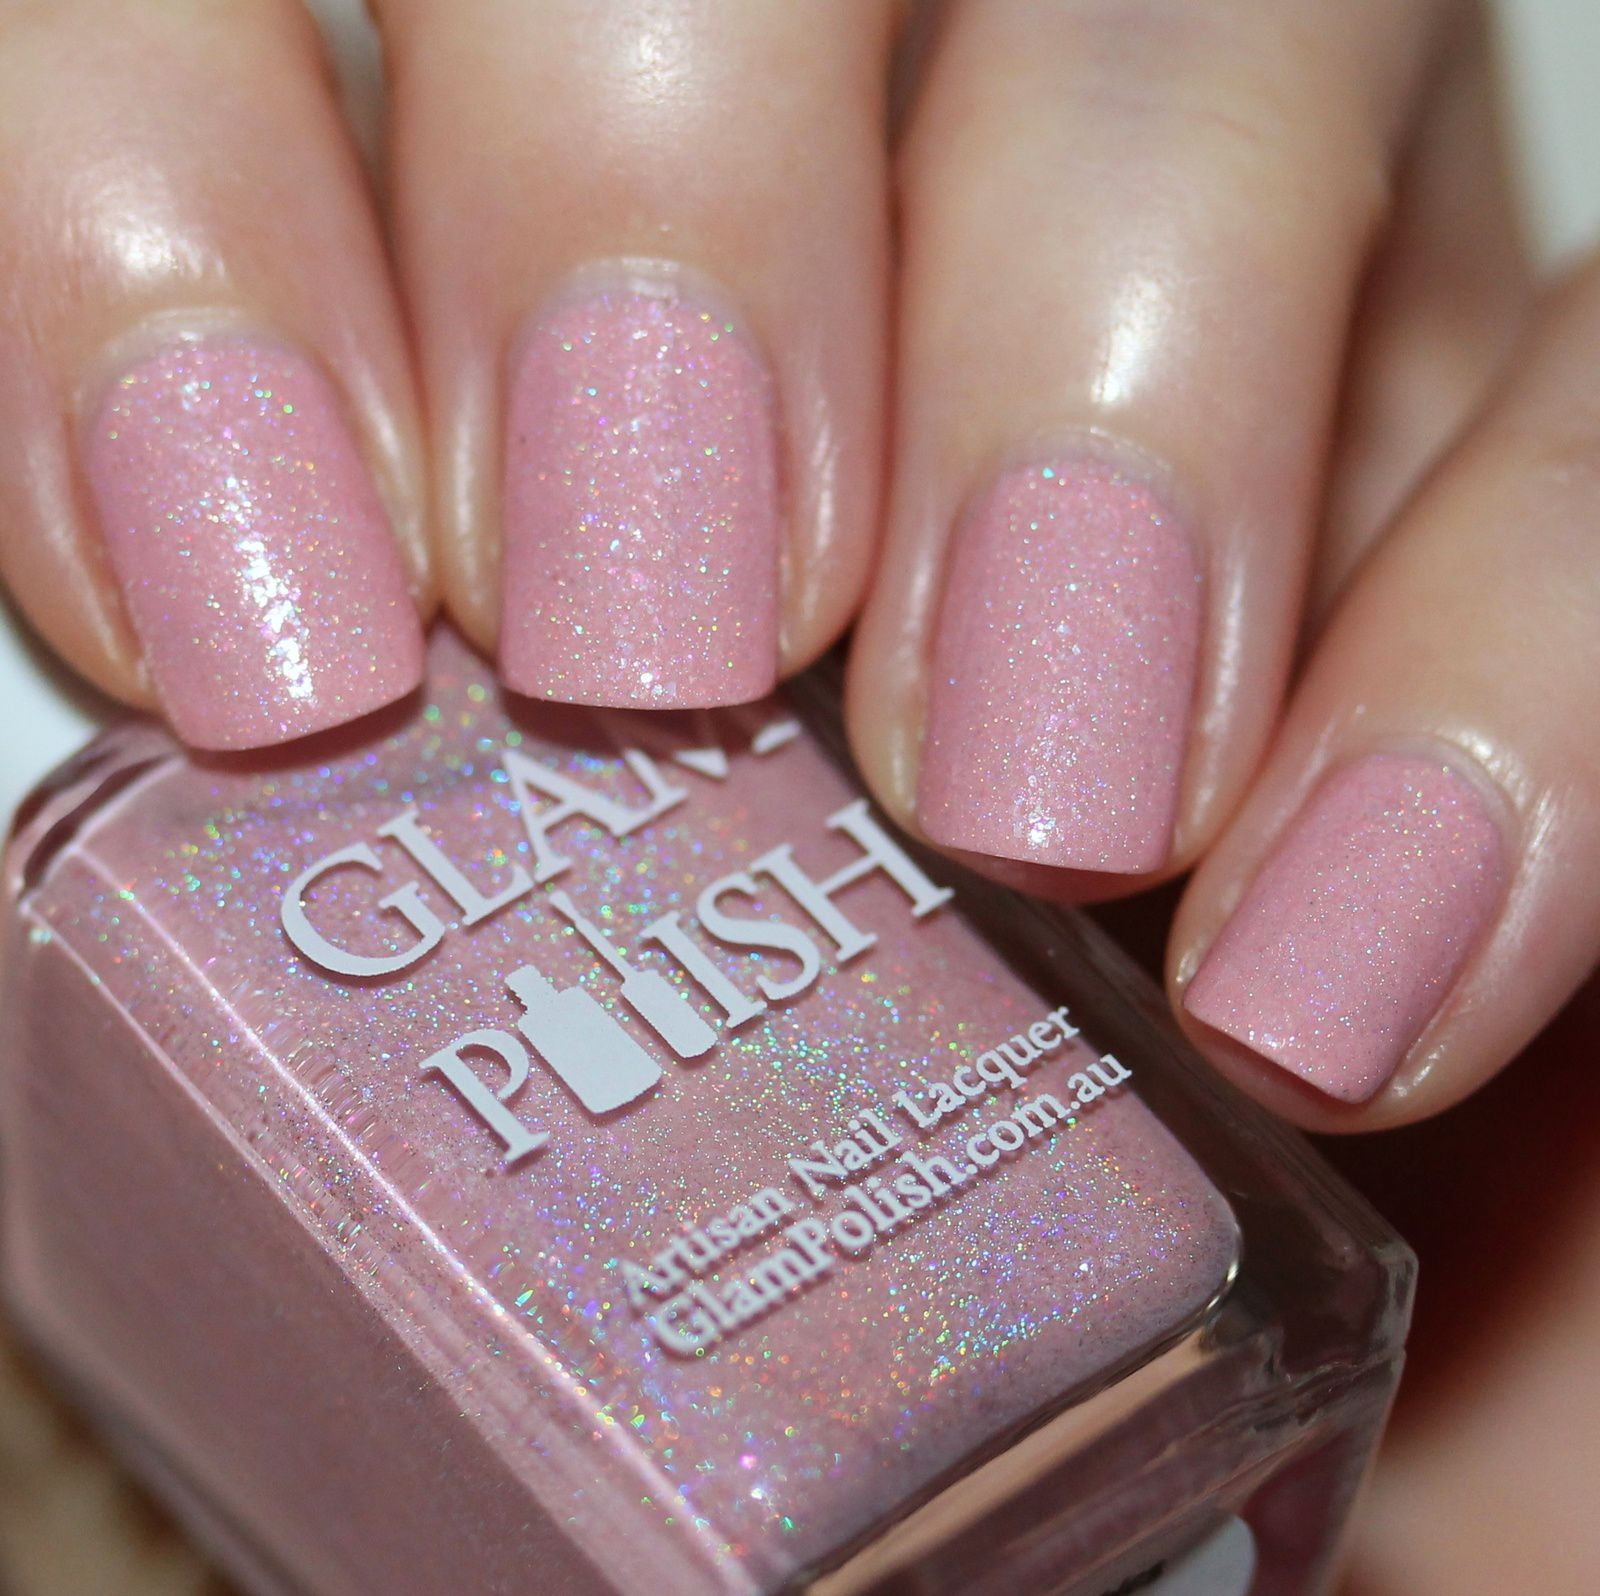 Glam Polish Beautiful (2 coats, not top coat)